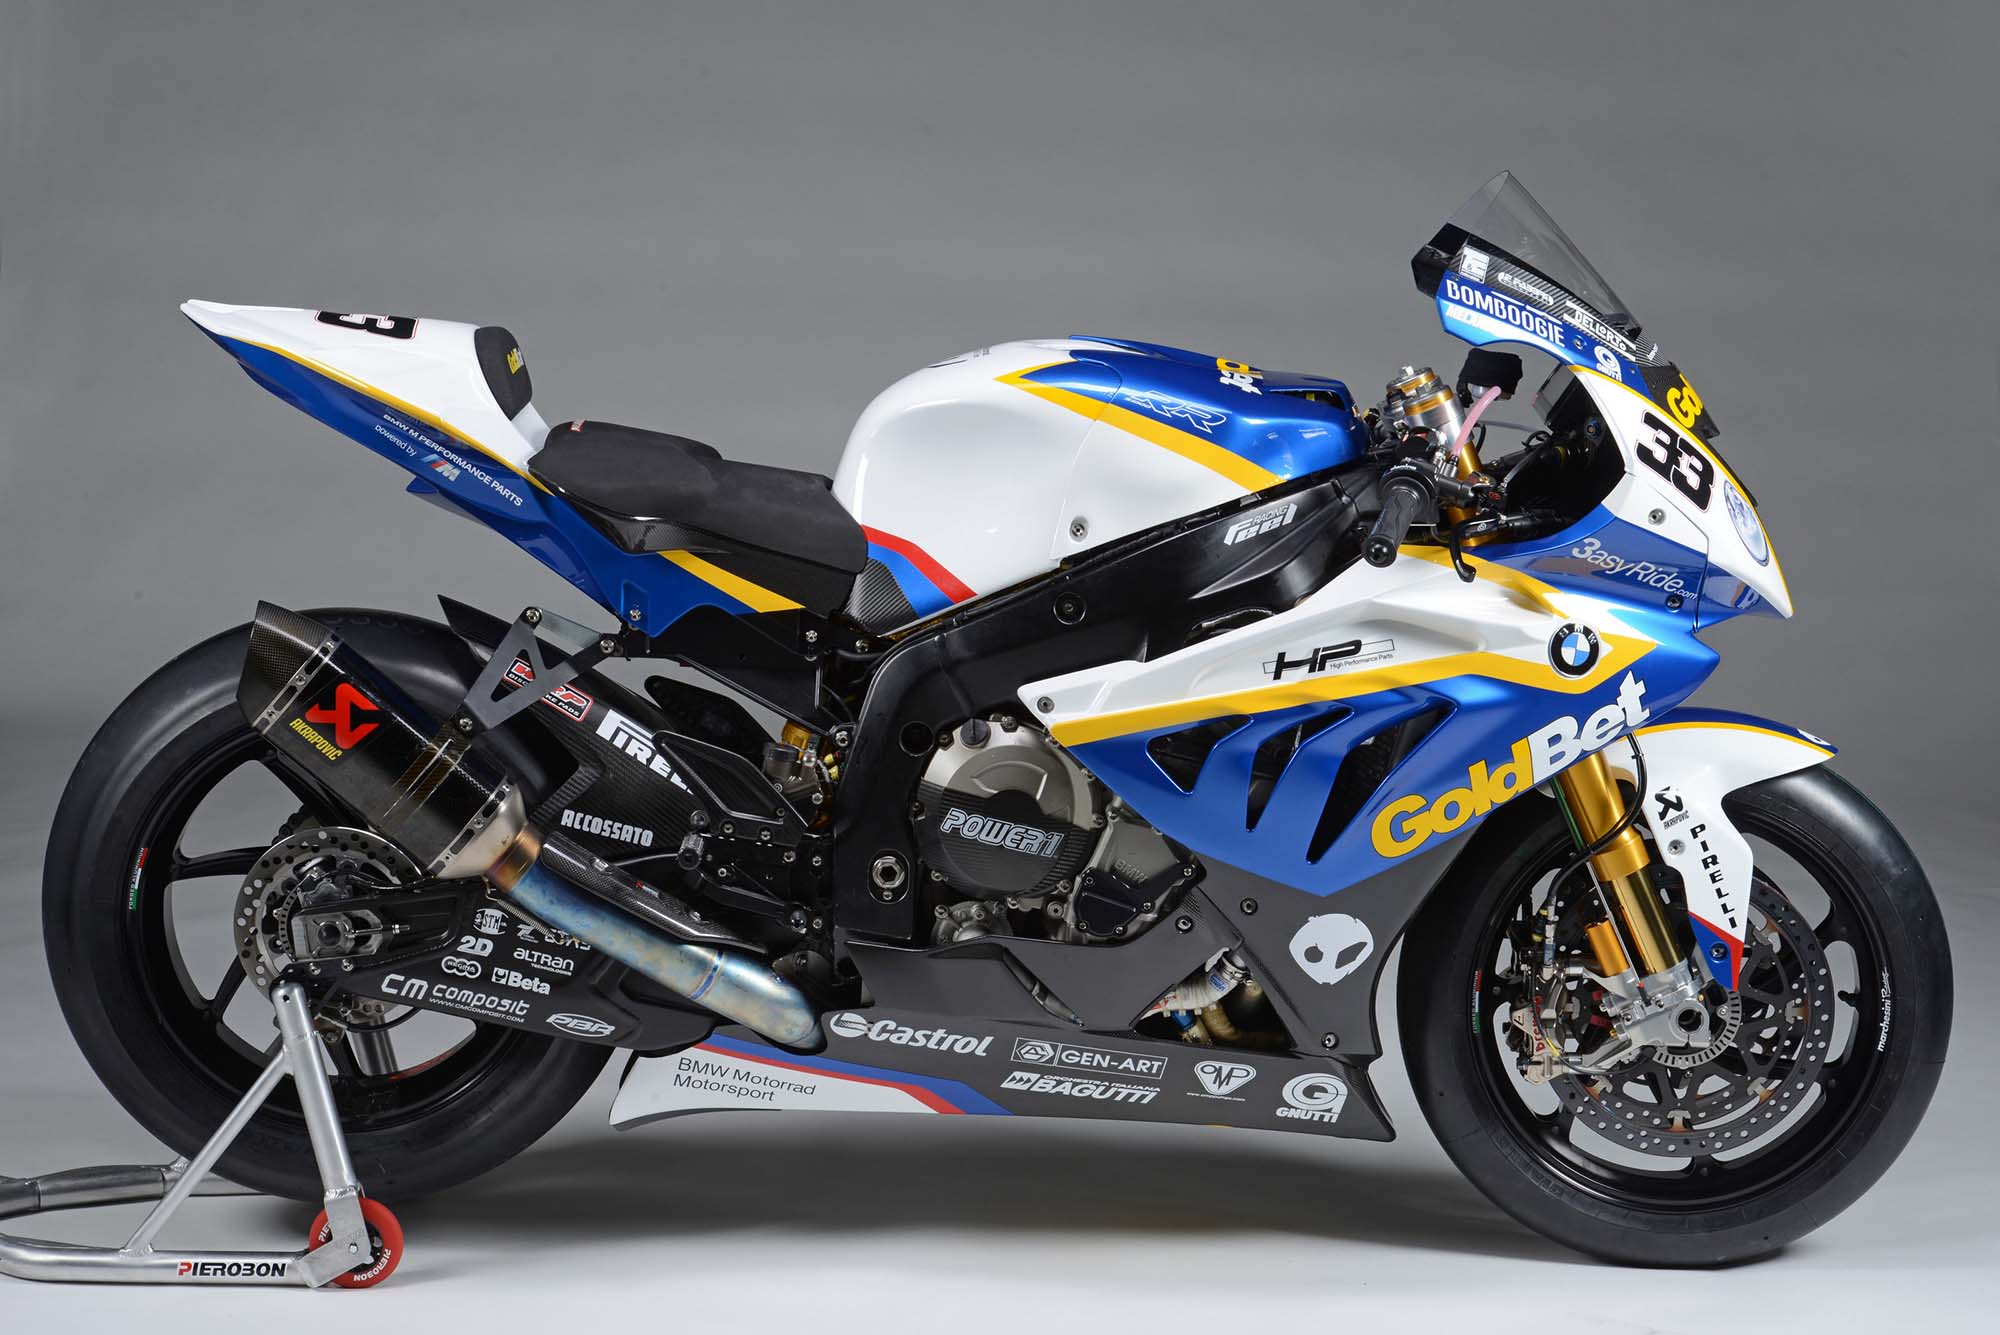 https://www.asphaltandrubber.com/wp-content/gallery/2013-bmw-s1000rr-goldbet-wsbk-team/2013-bmw-s1000rr-goldbet-wsbk-team-01.jpg